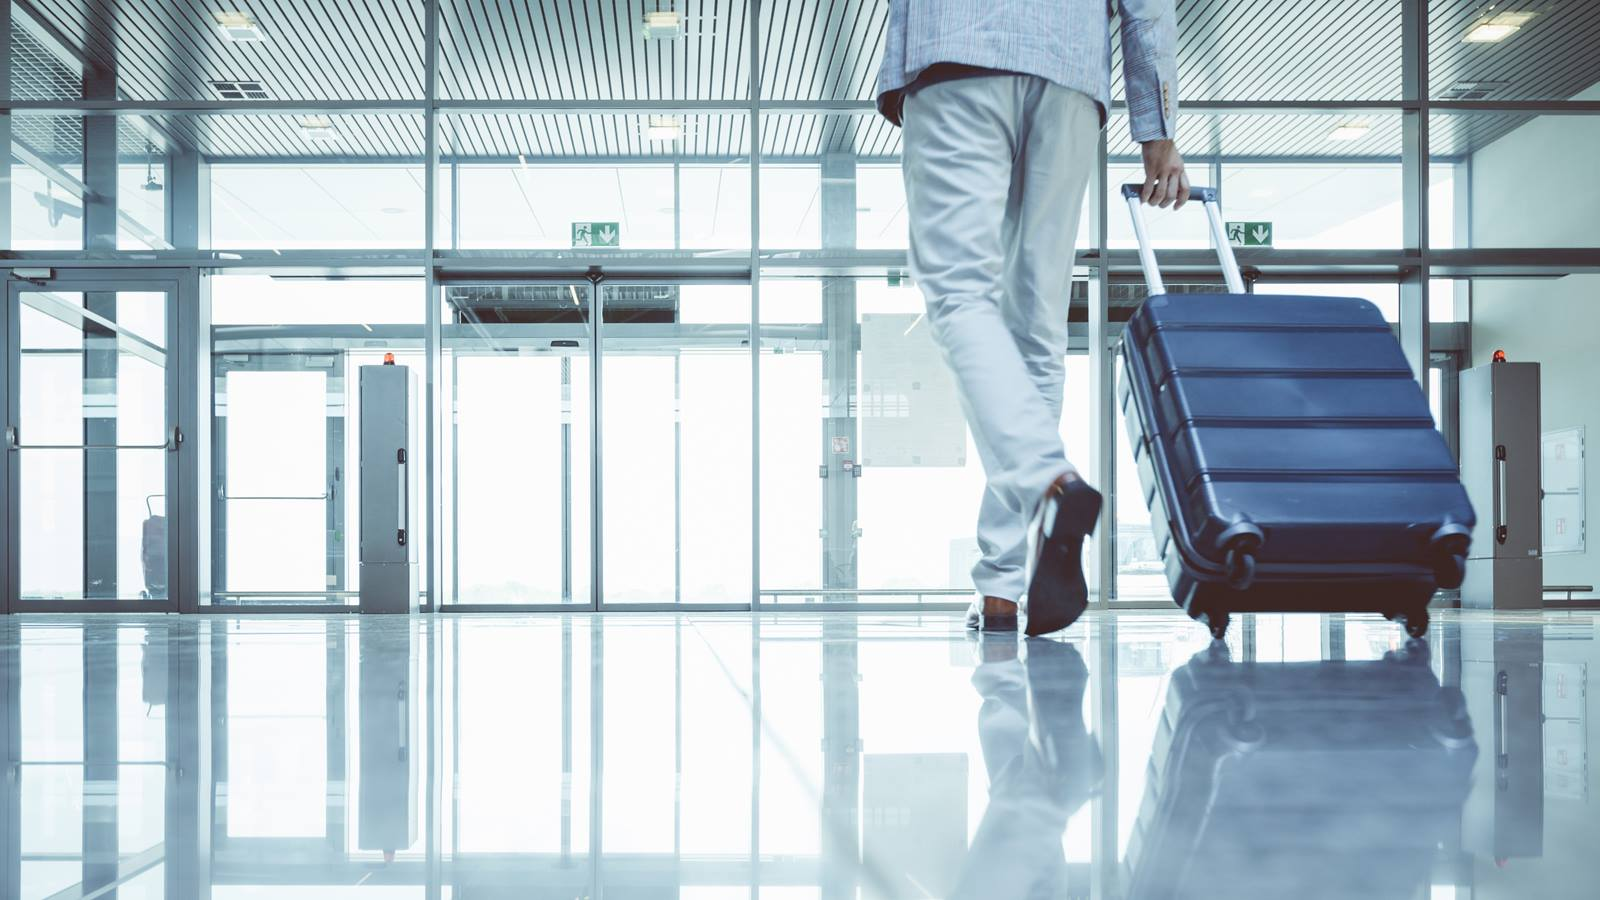 10 ideas for living when traveling for work in Film/TV